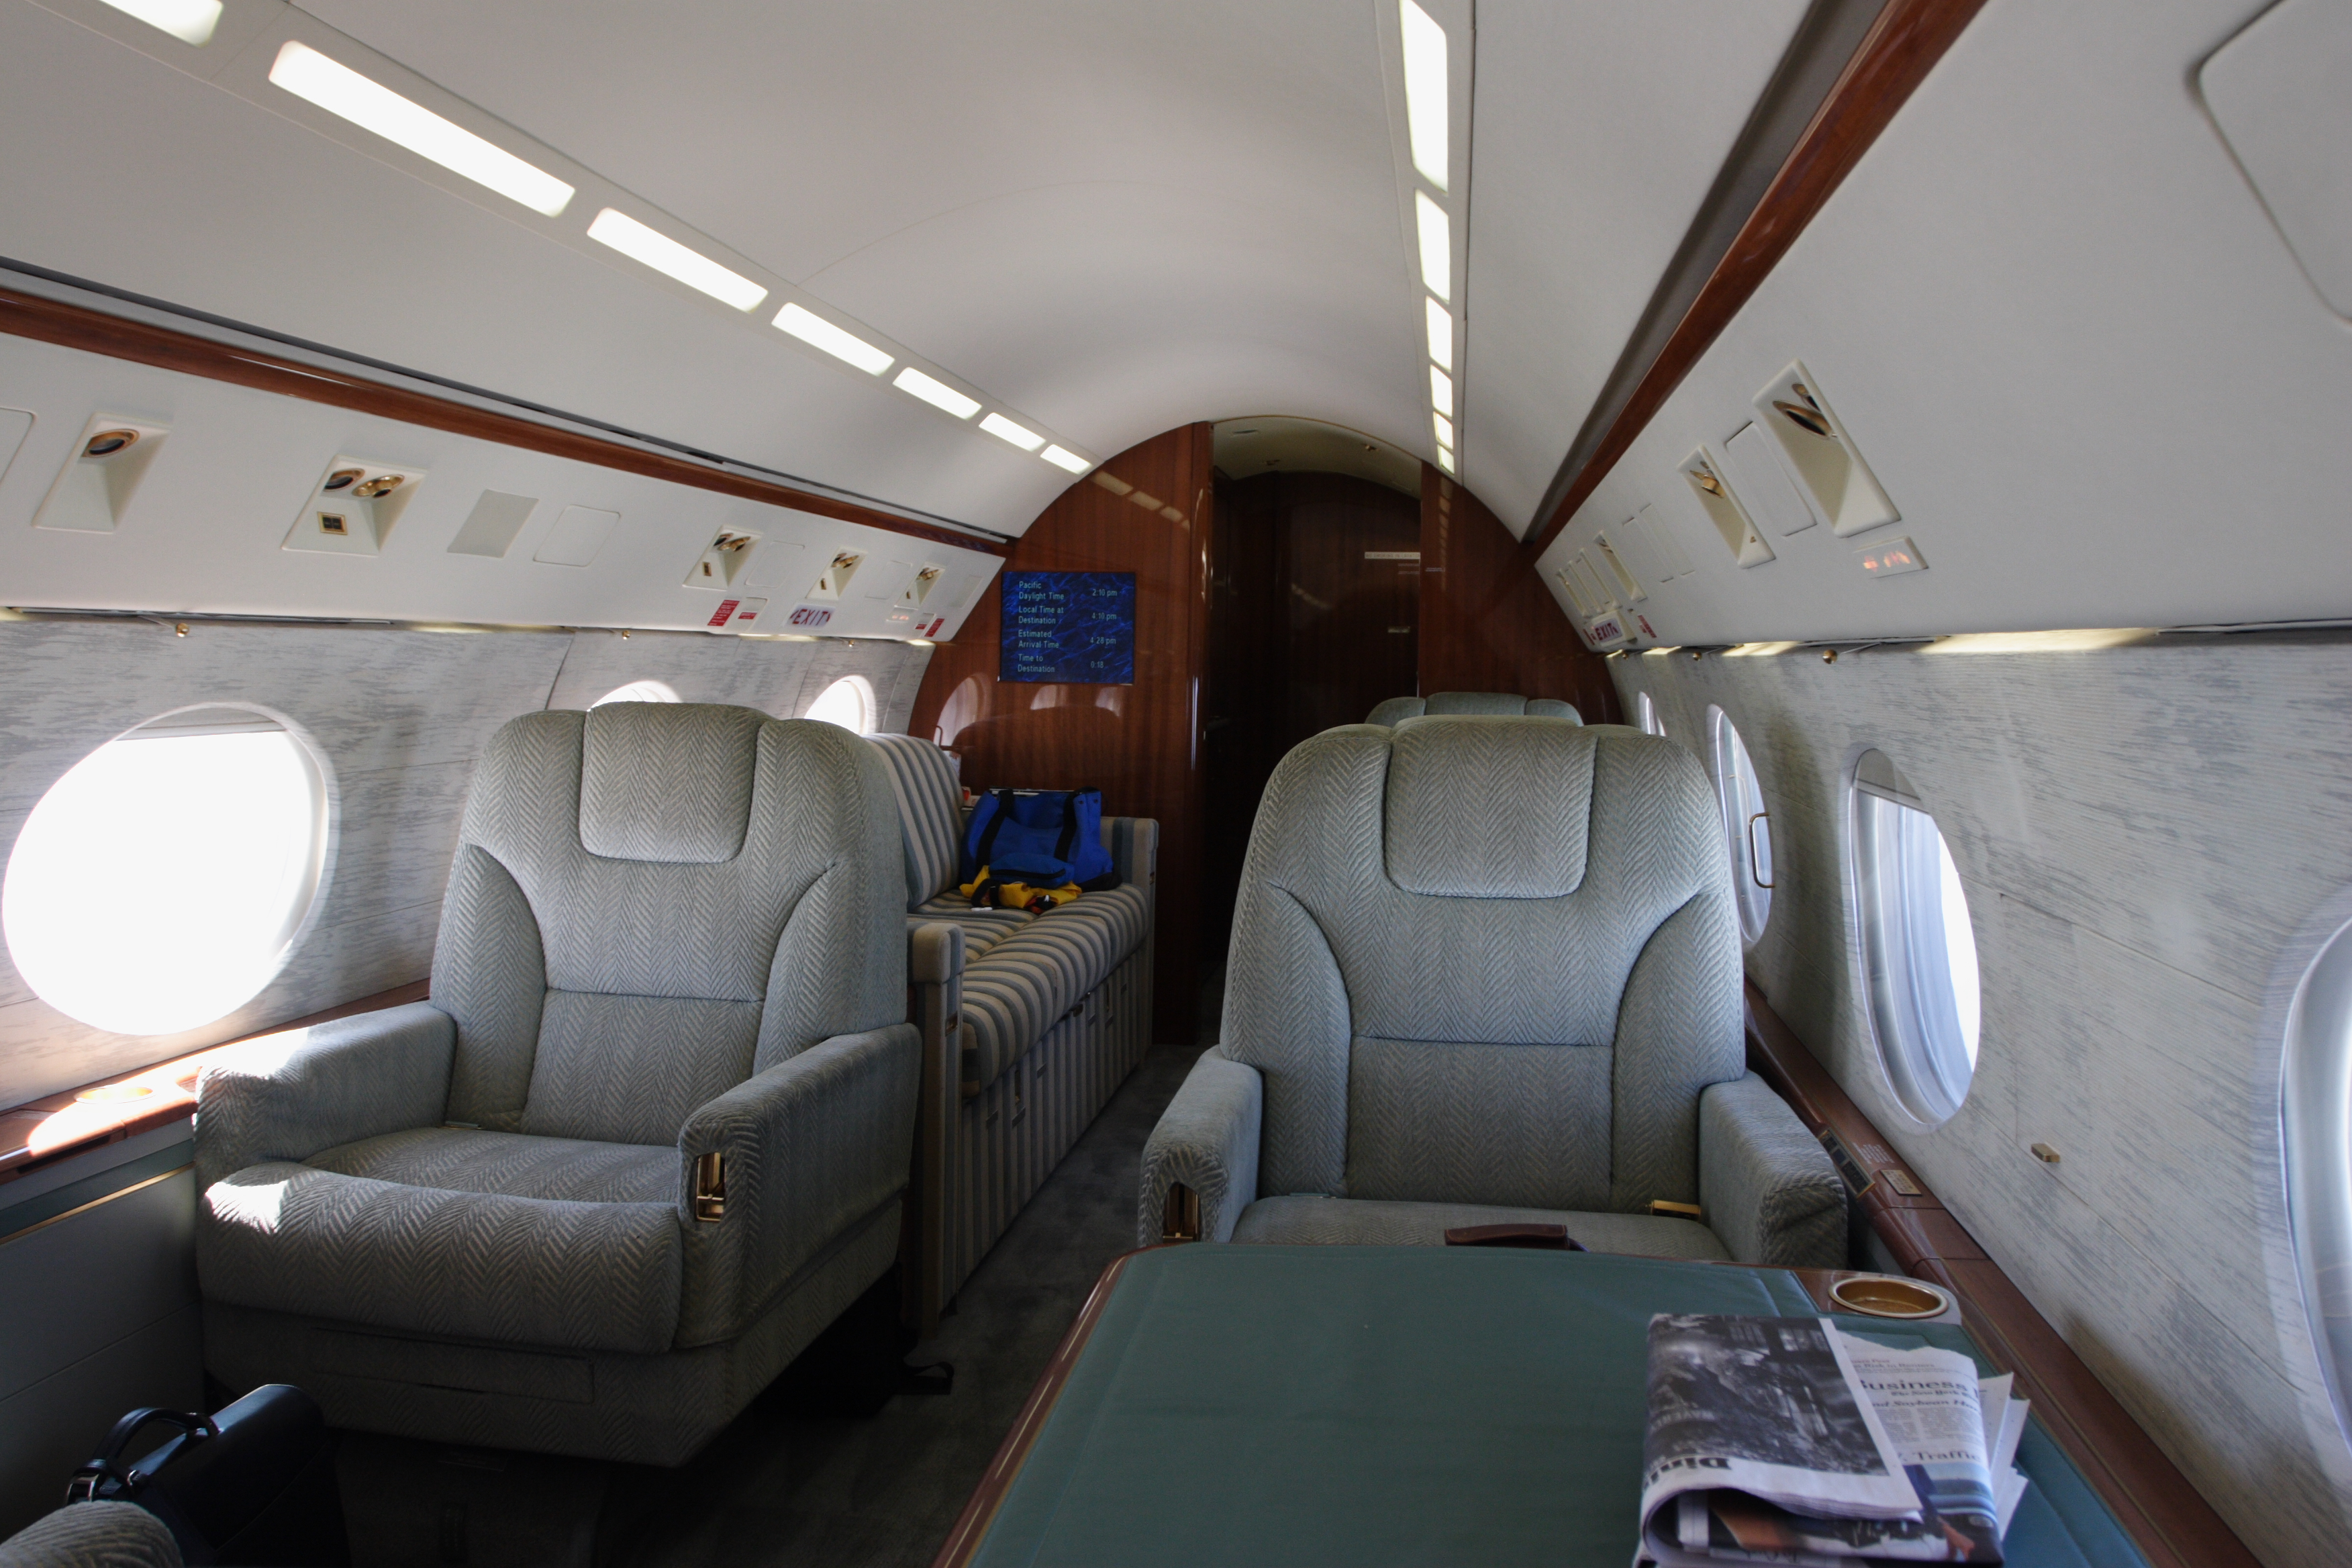 Rear view of private jet